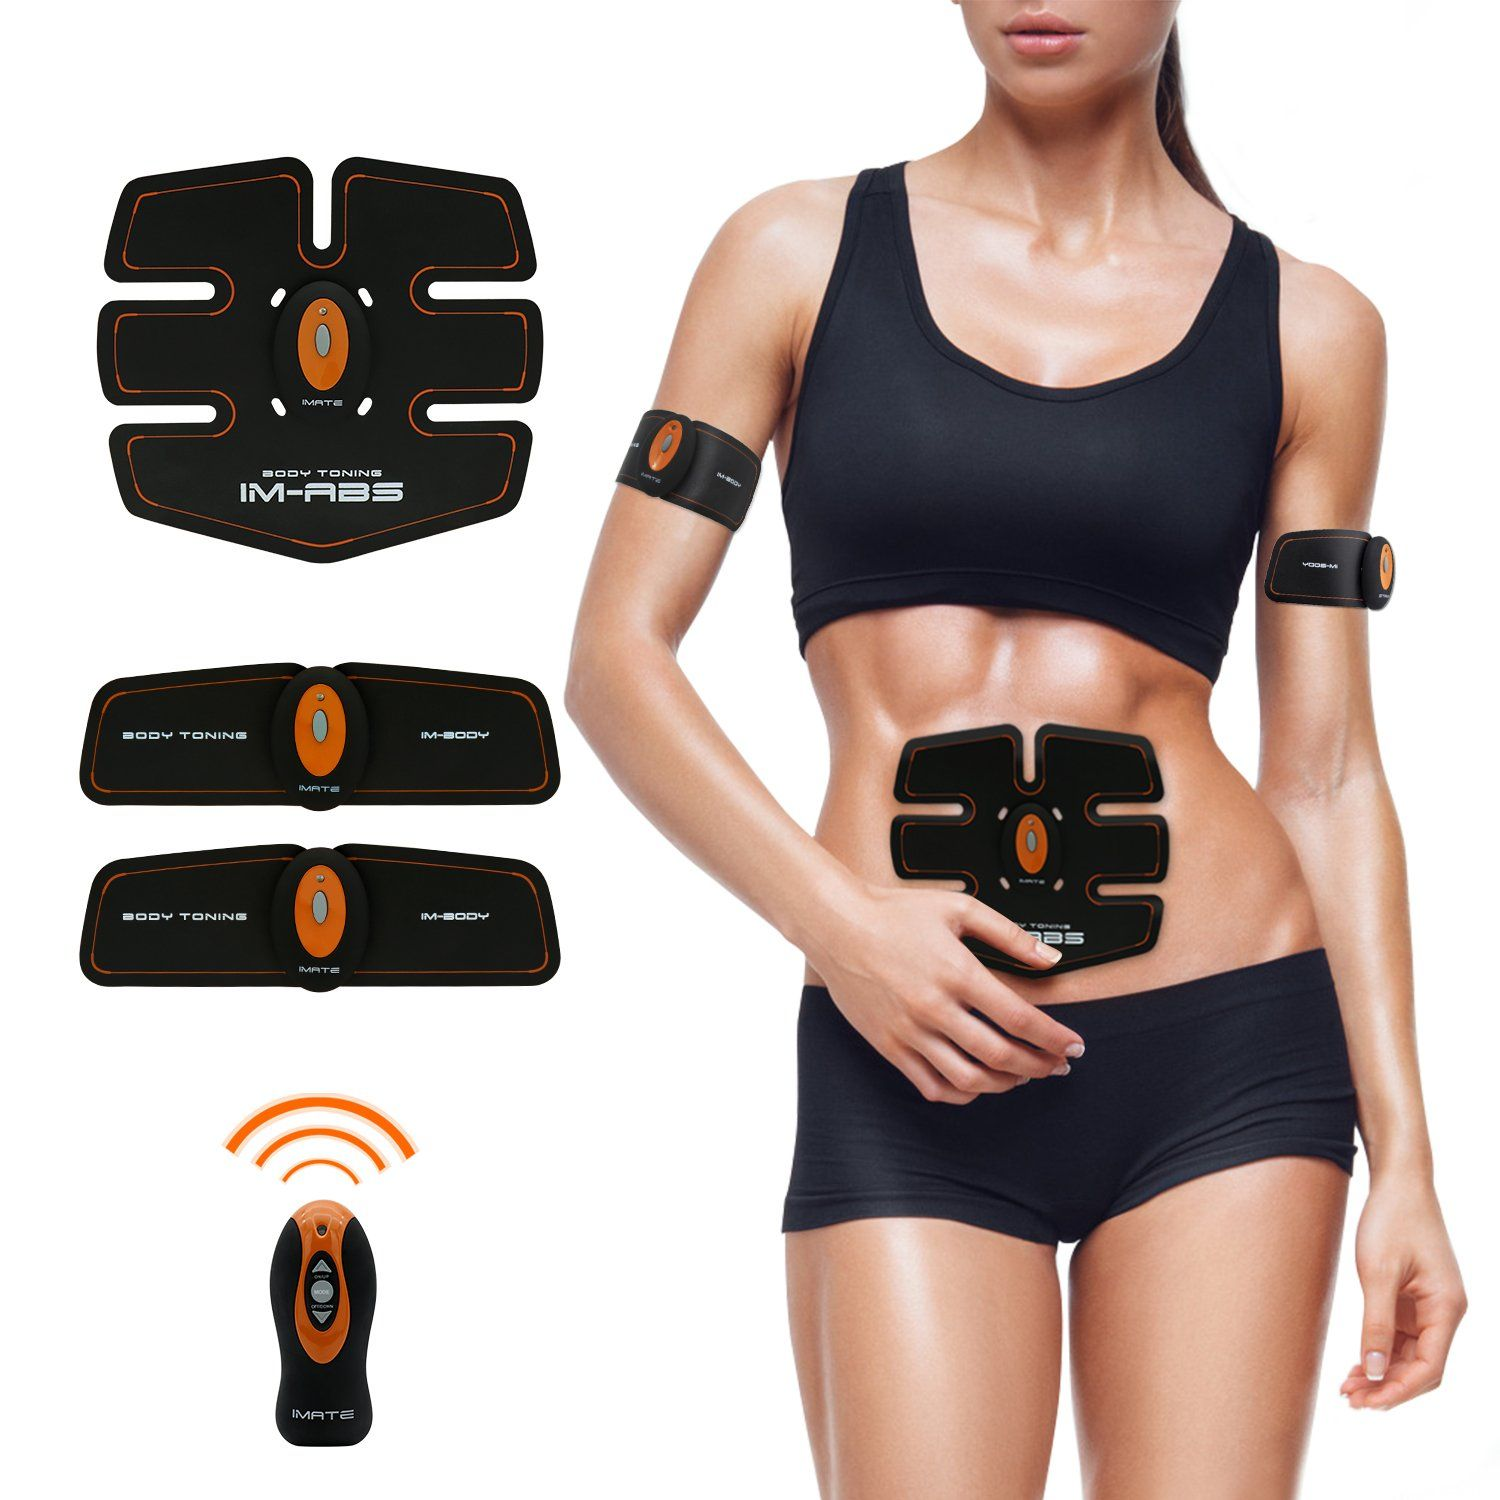 Abdominal Muscle Toner Abs Training Gear Body Fit Toning Belt Wireless Muscle Exercise For Abdomen Arm Leg T Leg Training Exercise Abdomen No Equipment Workout